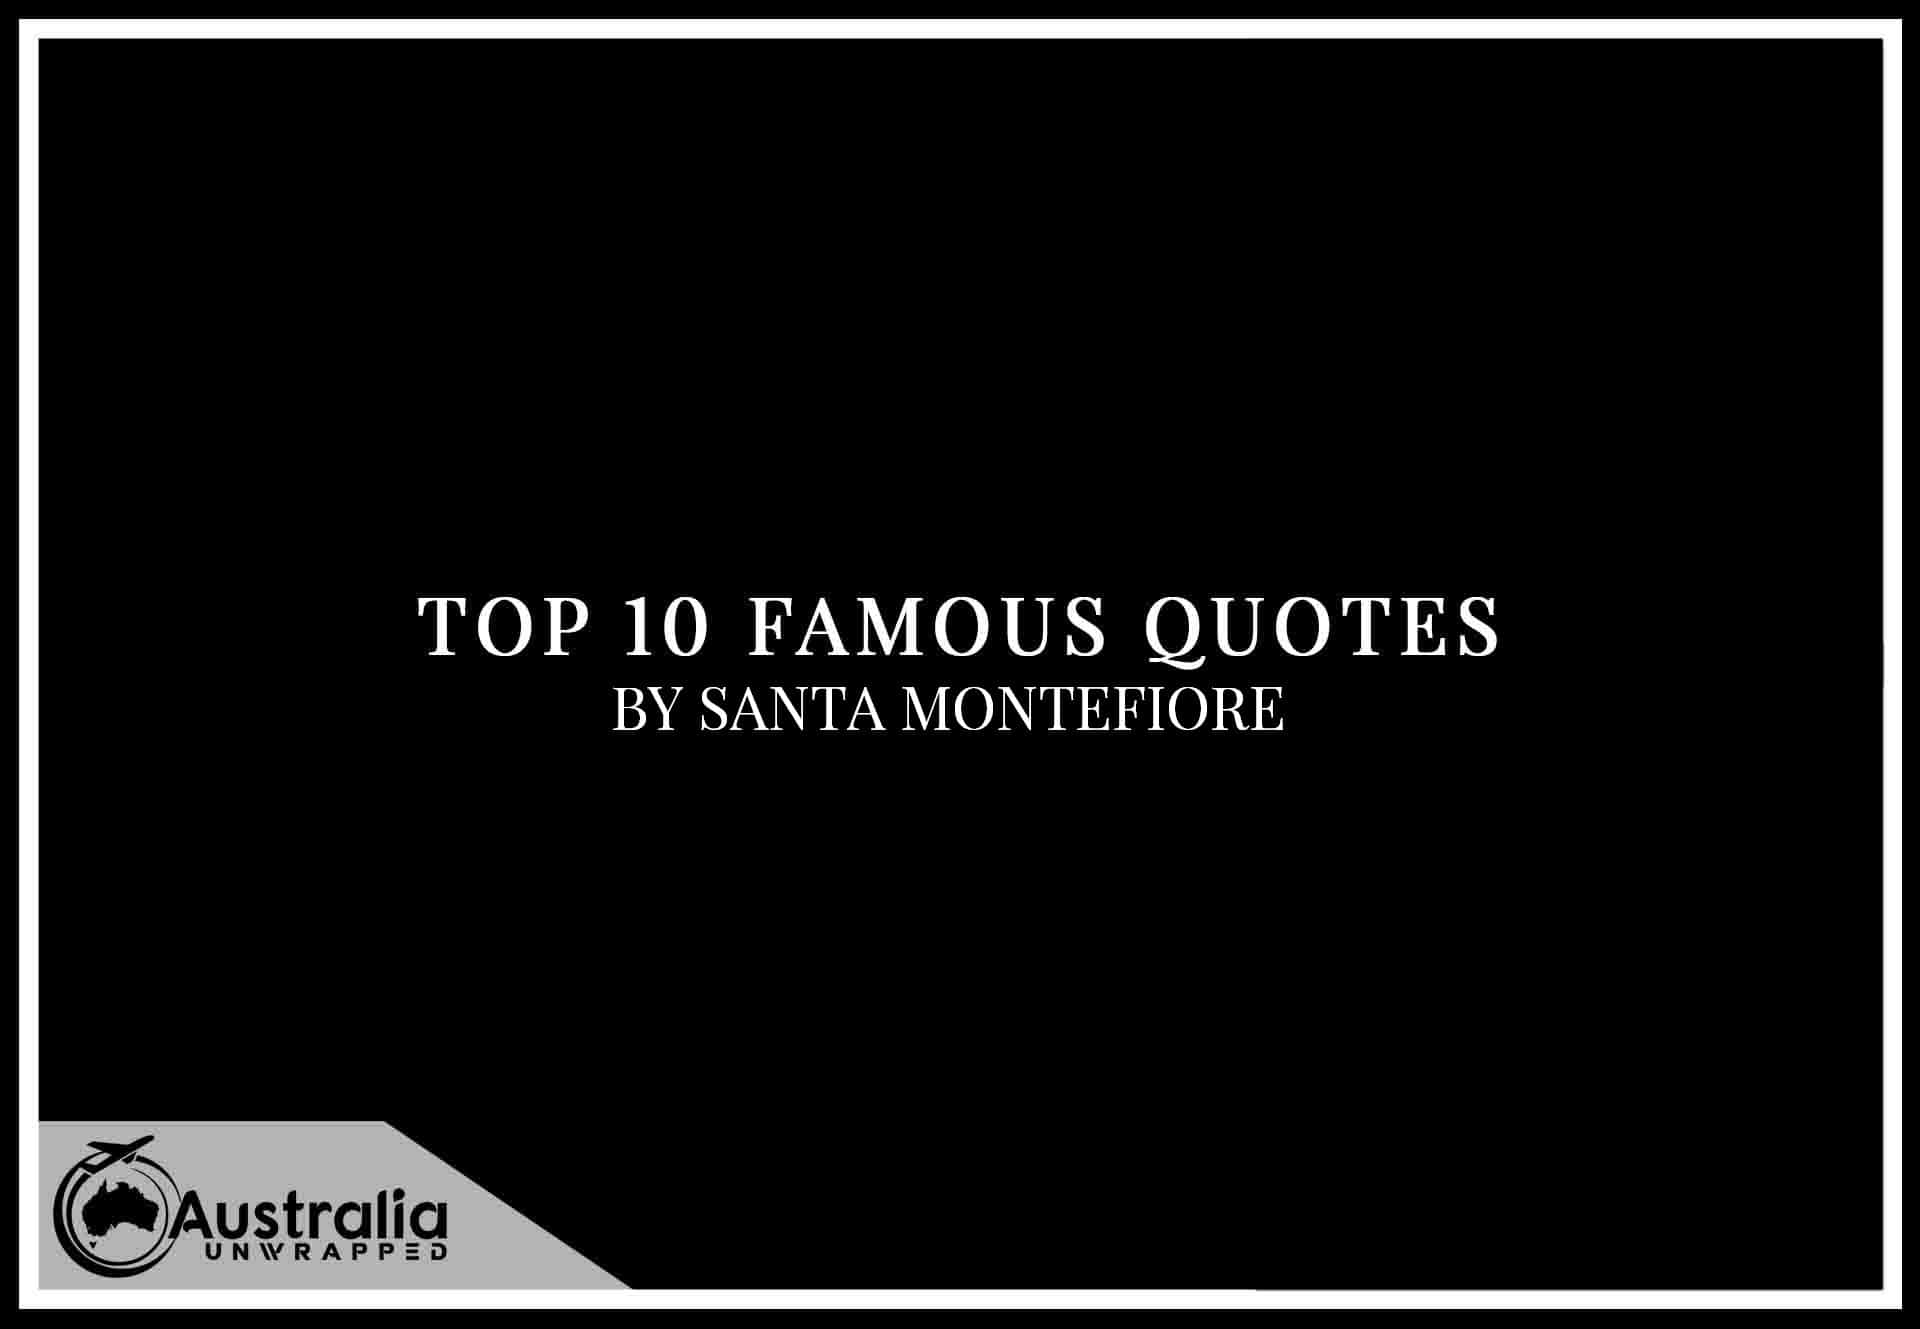 Top 10 Famous Quotes by Author Santa Montefiore